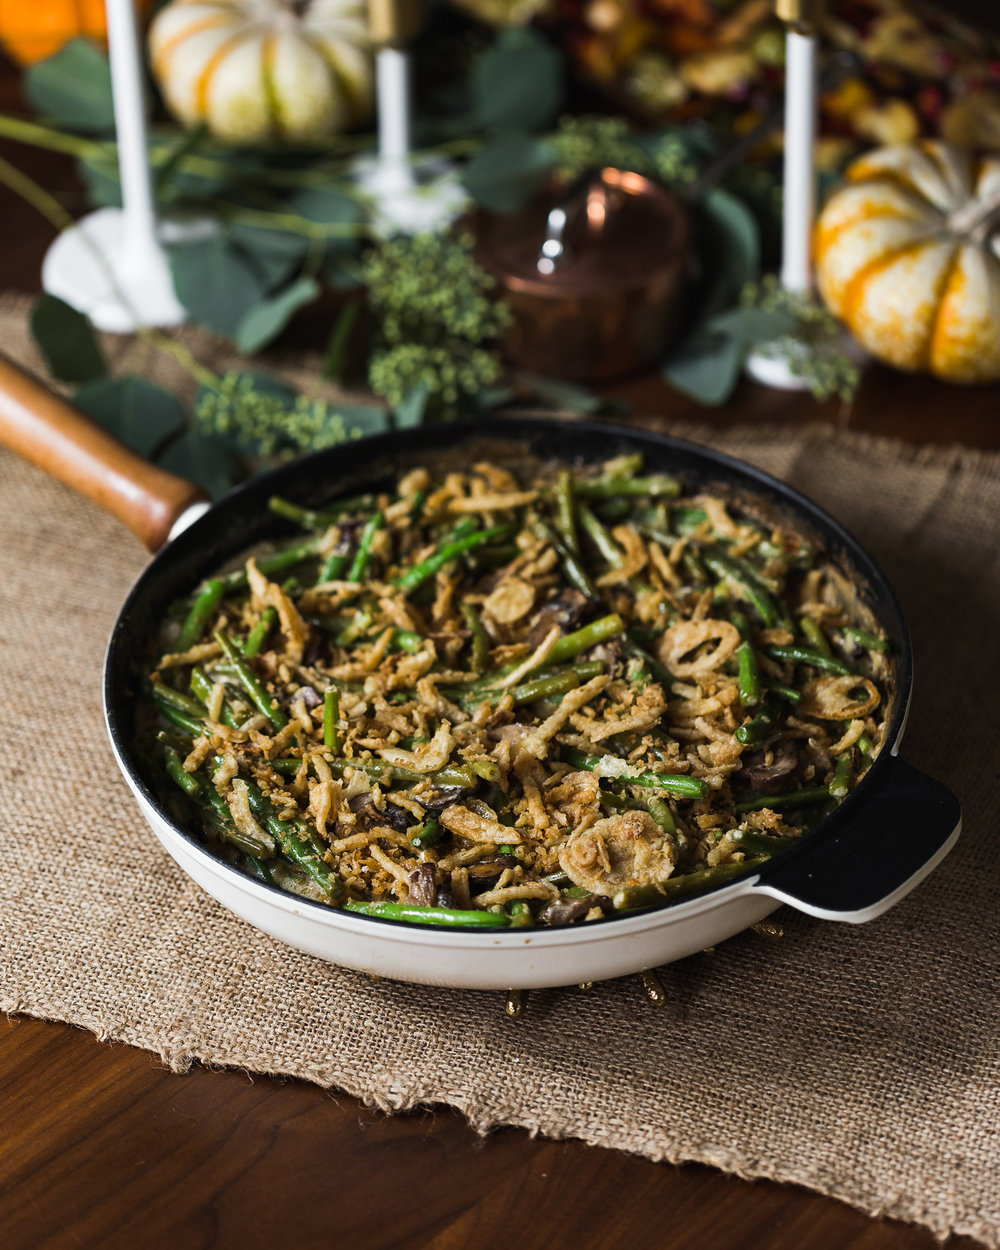 Stovetop Green Bean Casserole - Yield: 6-81 1/2 pounds haricots verts (French string beans), stem ends removed3 tablespoons unsalted butter12 oz white mushrooms, ends removed and slicedKosher salt and cracked black pepper1 teaspoon Dijon mustard2 cloves garlic, minced3 tablespoons flour1 cup chicken broth1 cup heavy cream1 cup sour cream1/3 cup fried crunchy fried onionsBring a large pot of salted water to a boil. Add the beans and blanch until crisp but tender, 2-3 minutes. Immediately drain the beans and run cold water over them or plunge them into an ice bath to cool and stop the cooking process. Drain and dry.In a large skillet, melt the butter and add the mushrooms. Season with salt and pepper, to taste, and add mustard. Cook the mushrooms, 5-8 minutes until they give off most of their liquid.Using a whisk, add the garlic and flour to the mushrooms. Stir to incorporate then add the chicken broth. Bring to a simmer. Stir in the cream and sour cream, and bring to a simmer, tasting to adjust seasoning. Cook mixture until it's thickened and coats the back of a spoon, about 10 minutes.To assemble, stir the green beans into the mushroom mixture. Simmer on the stove, until the green beans become tender.